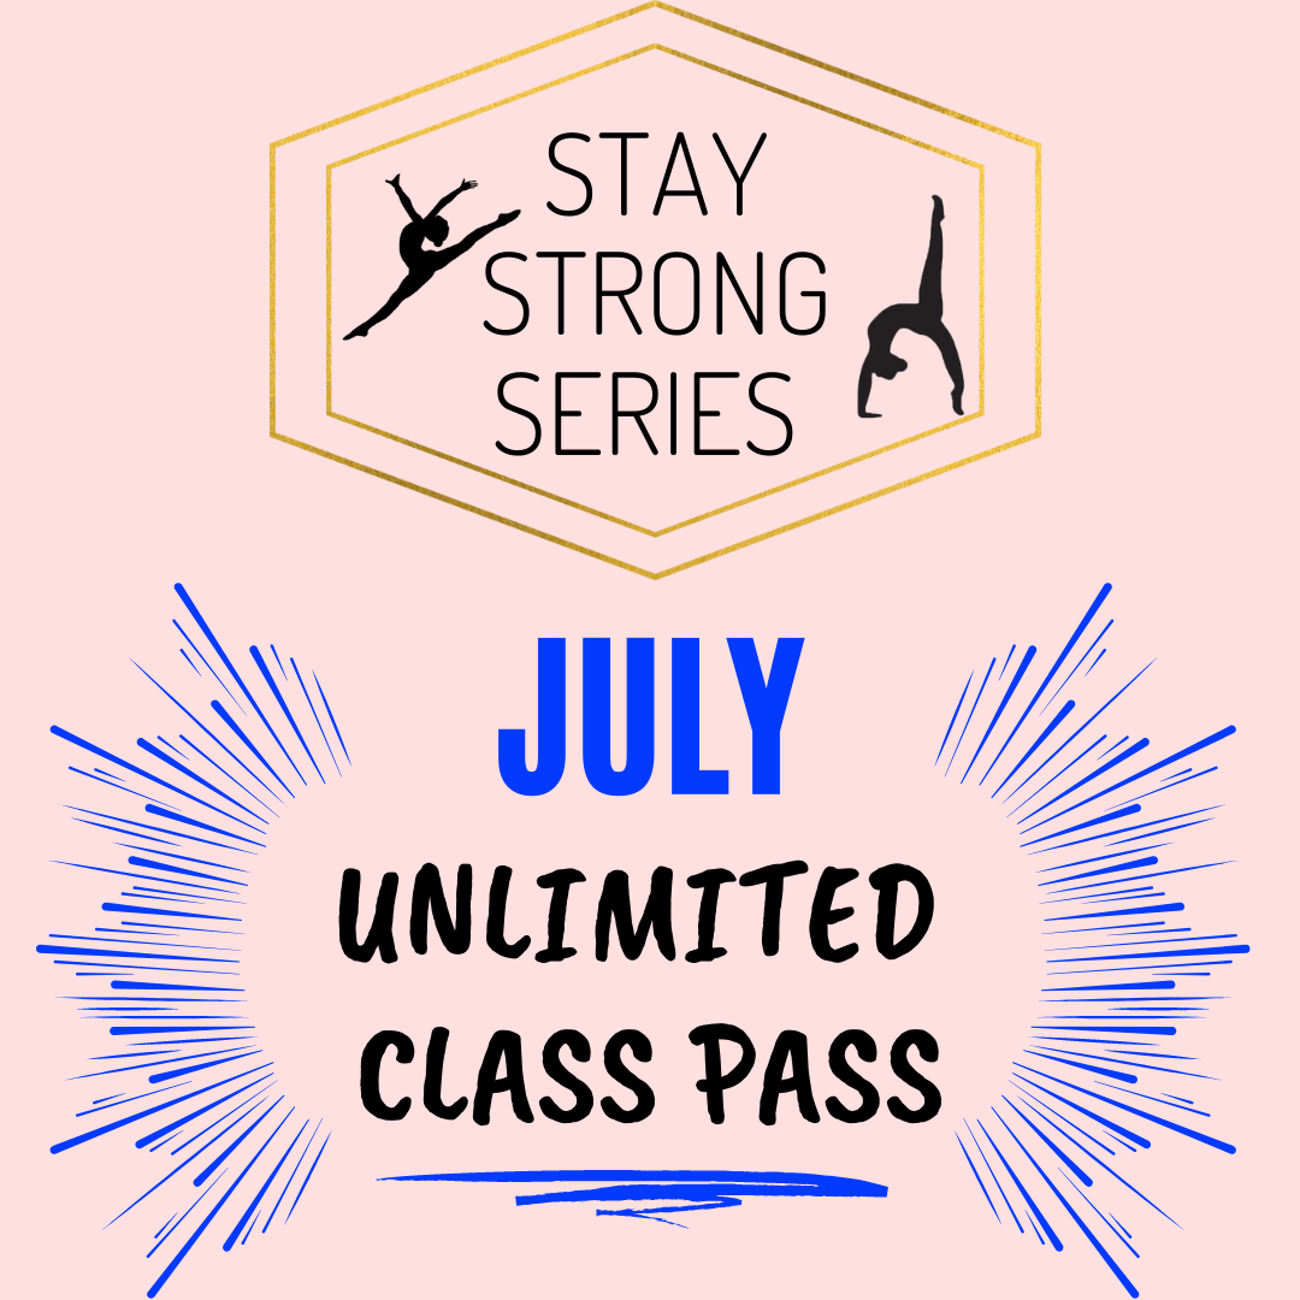 JULY UNLIMITED CLASS PASS **Stay Strong Series**